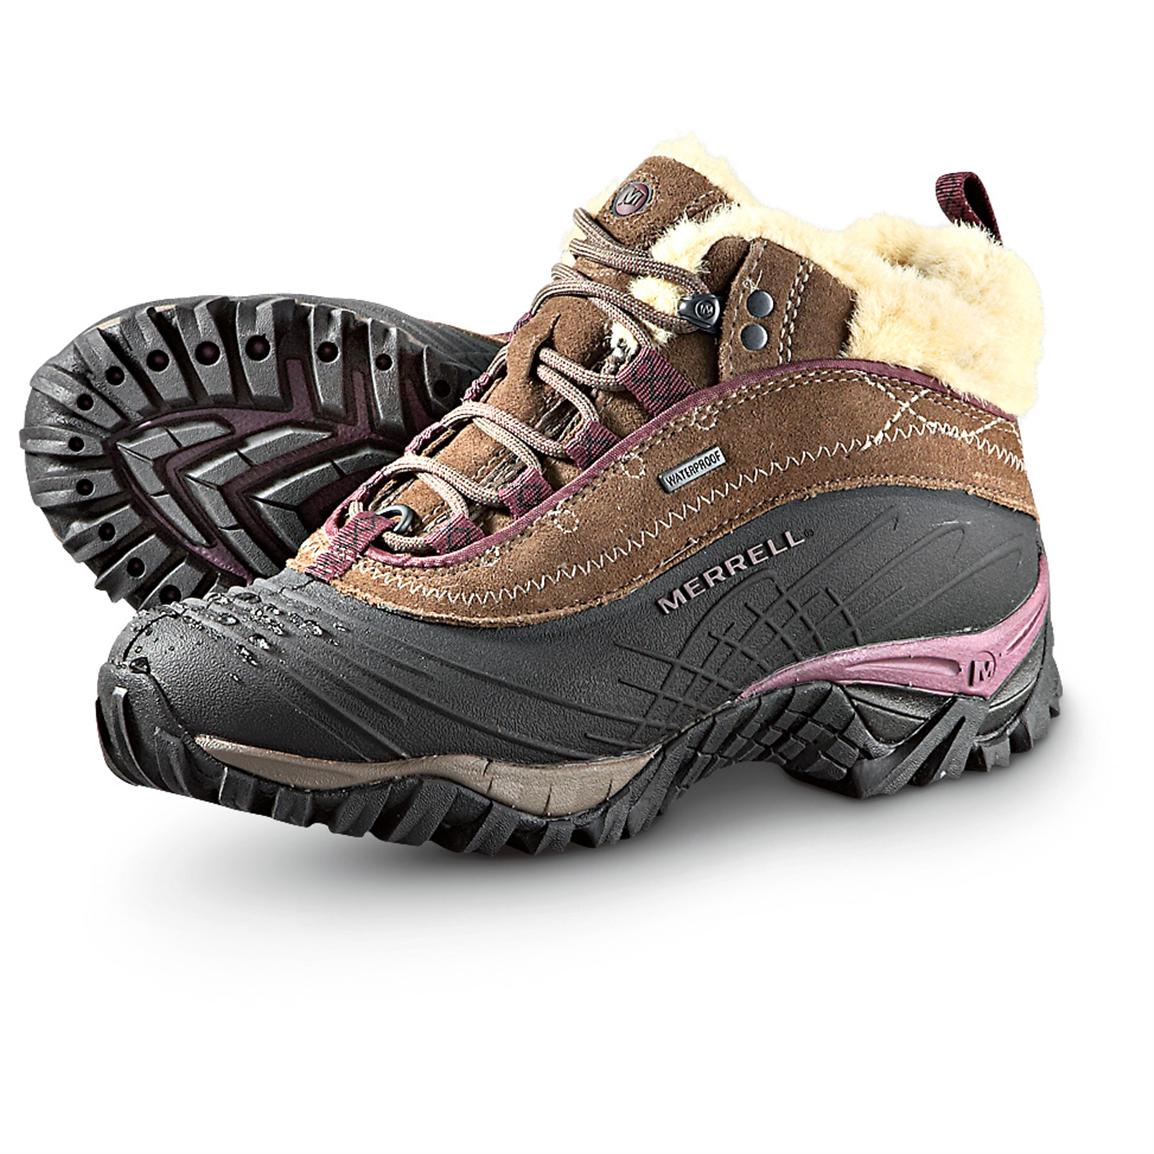 Women's Merrell® Insulated Waterproof Isotherm Boots, Stone